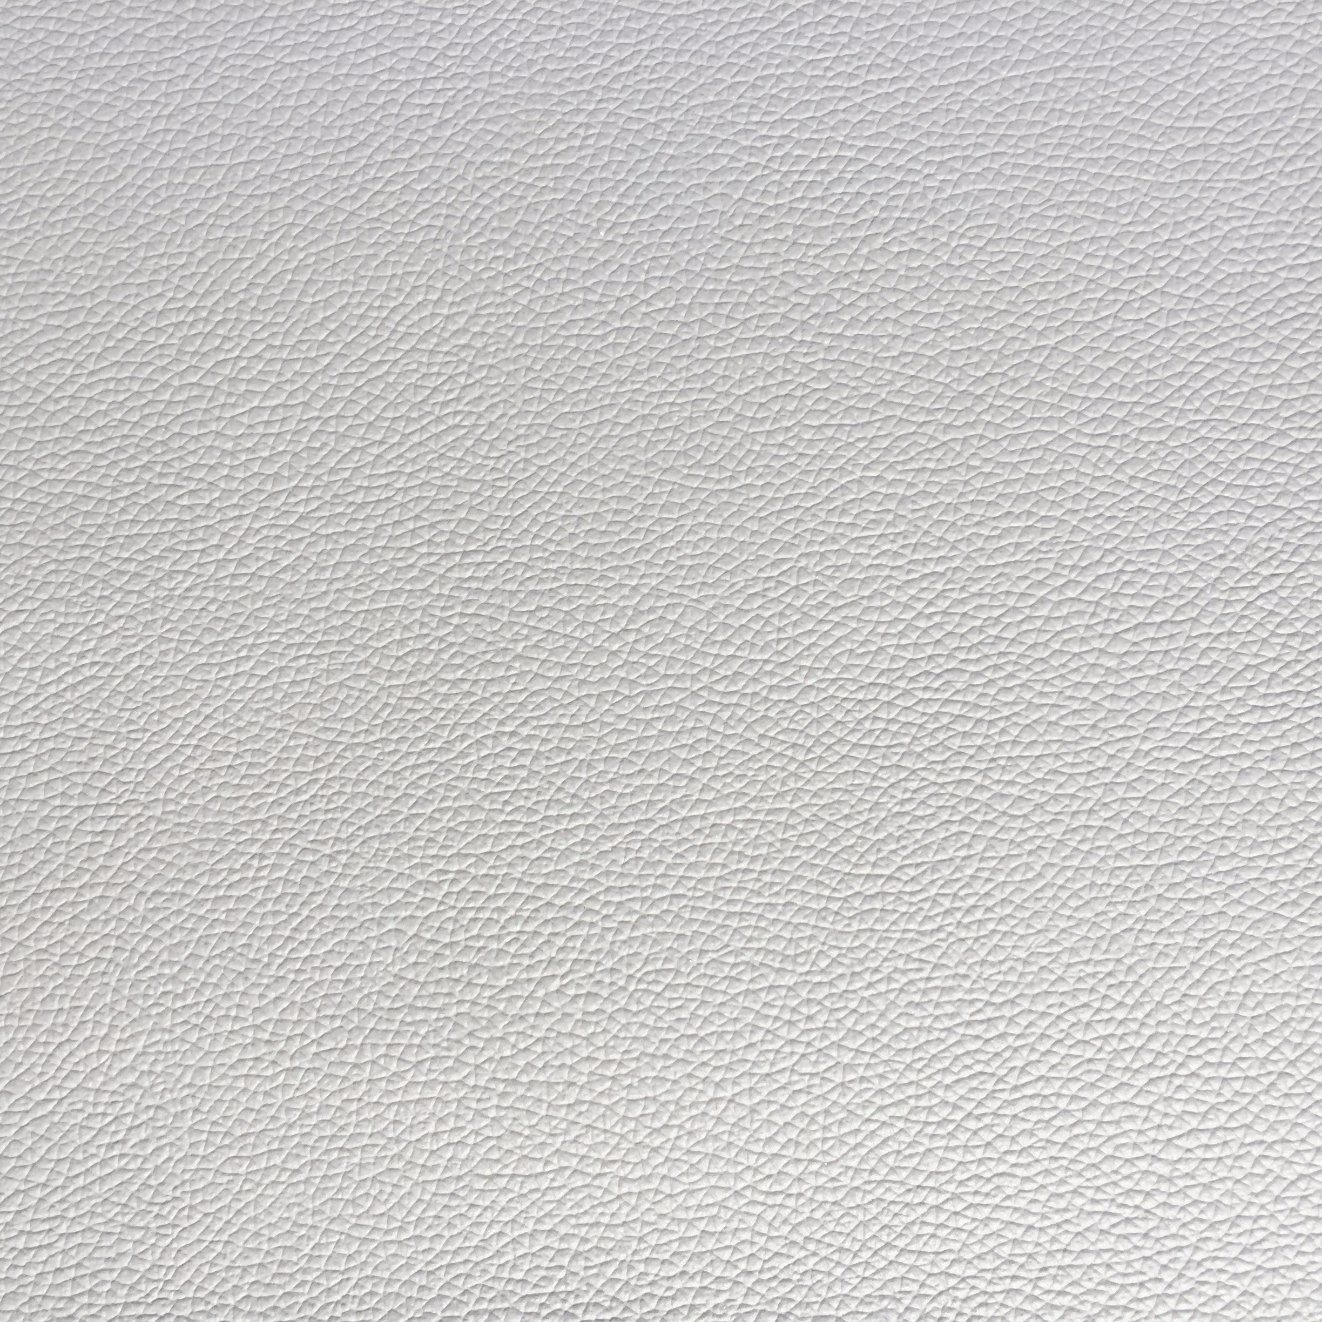 Synthetic Leather for Sofa, Furniture, Bag,